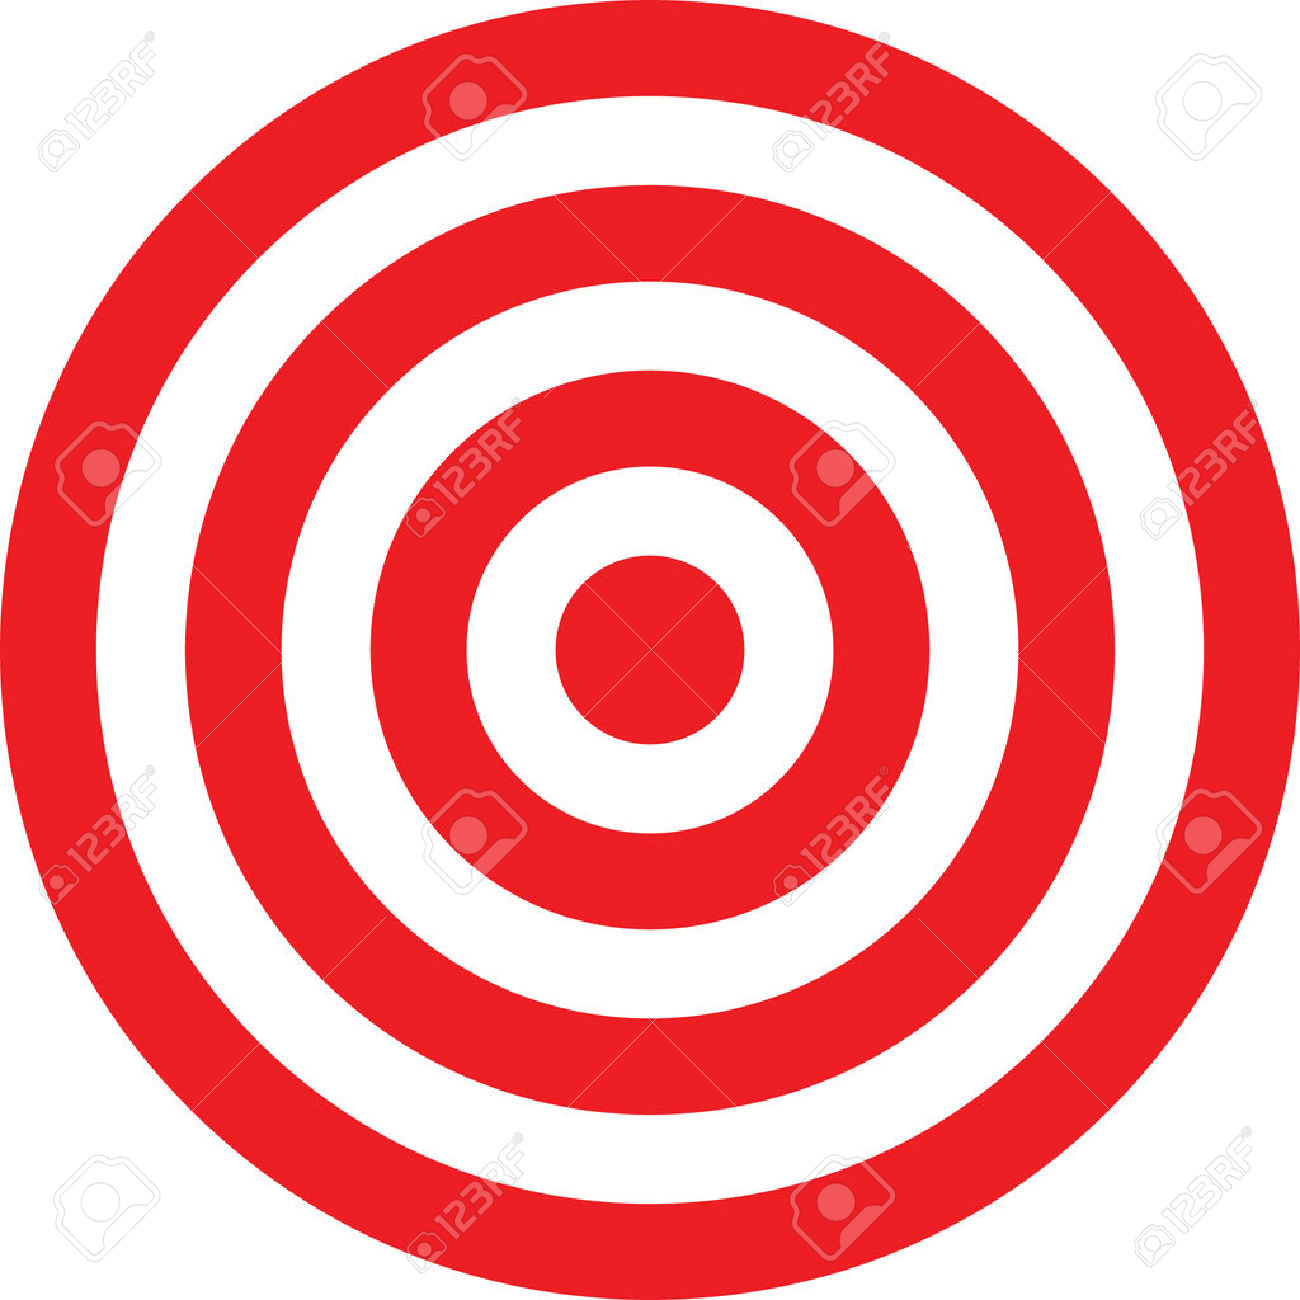 Target clipart no background png freeuse library Bullseye clipart no background - ClipartFest png freeuse library